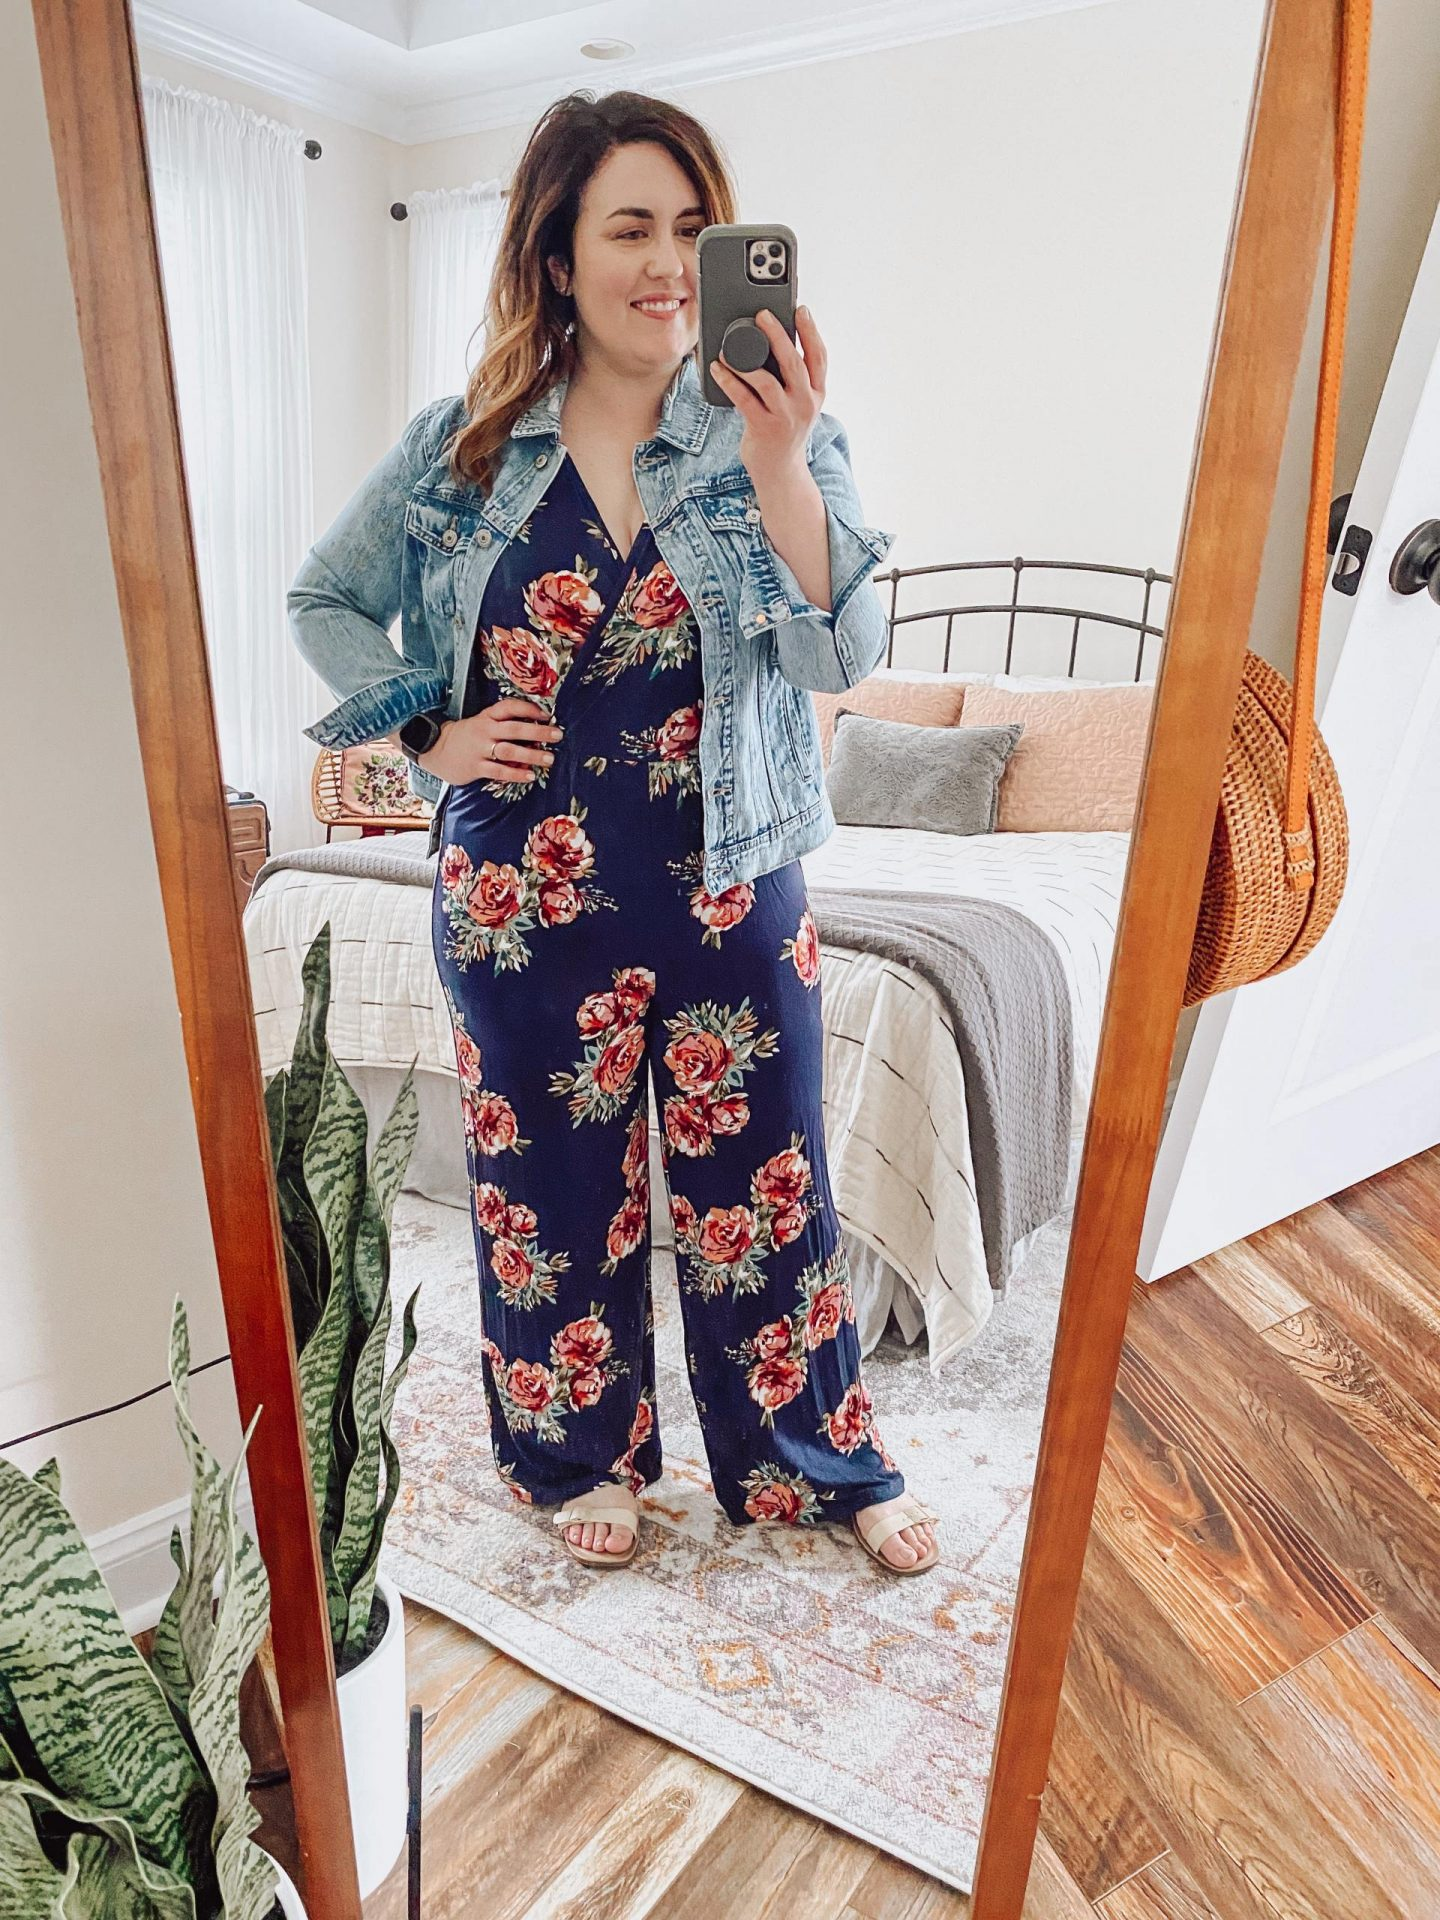 NC blogger Rebecca Lately is sharing how she styles a denim jacket for summer. From jeans to jumpsuit to dress, check out this inspo!